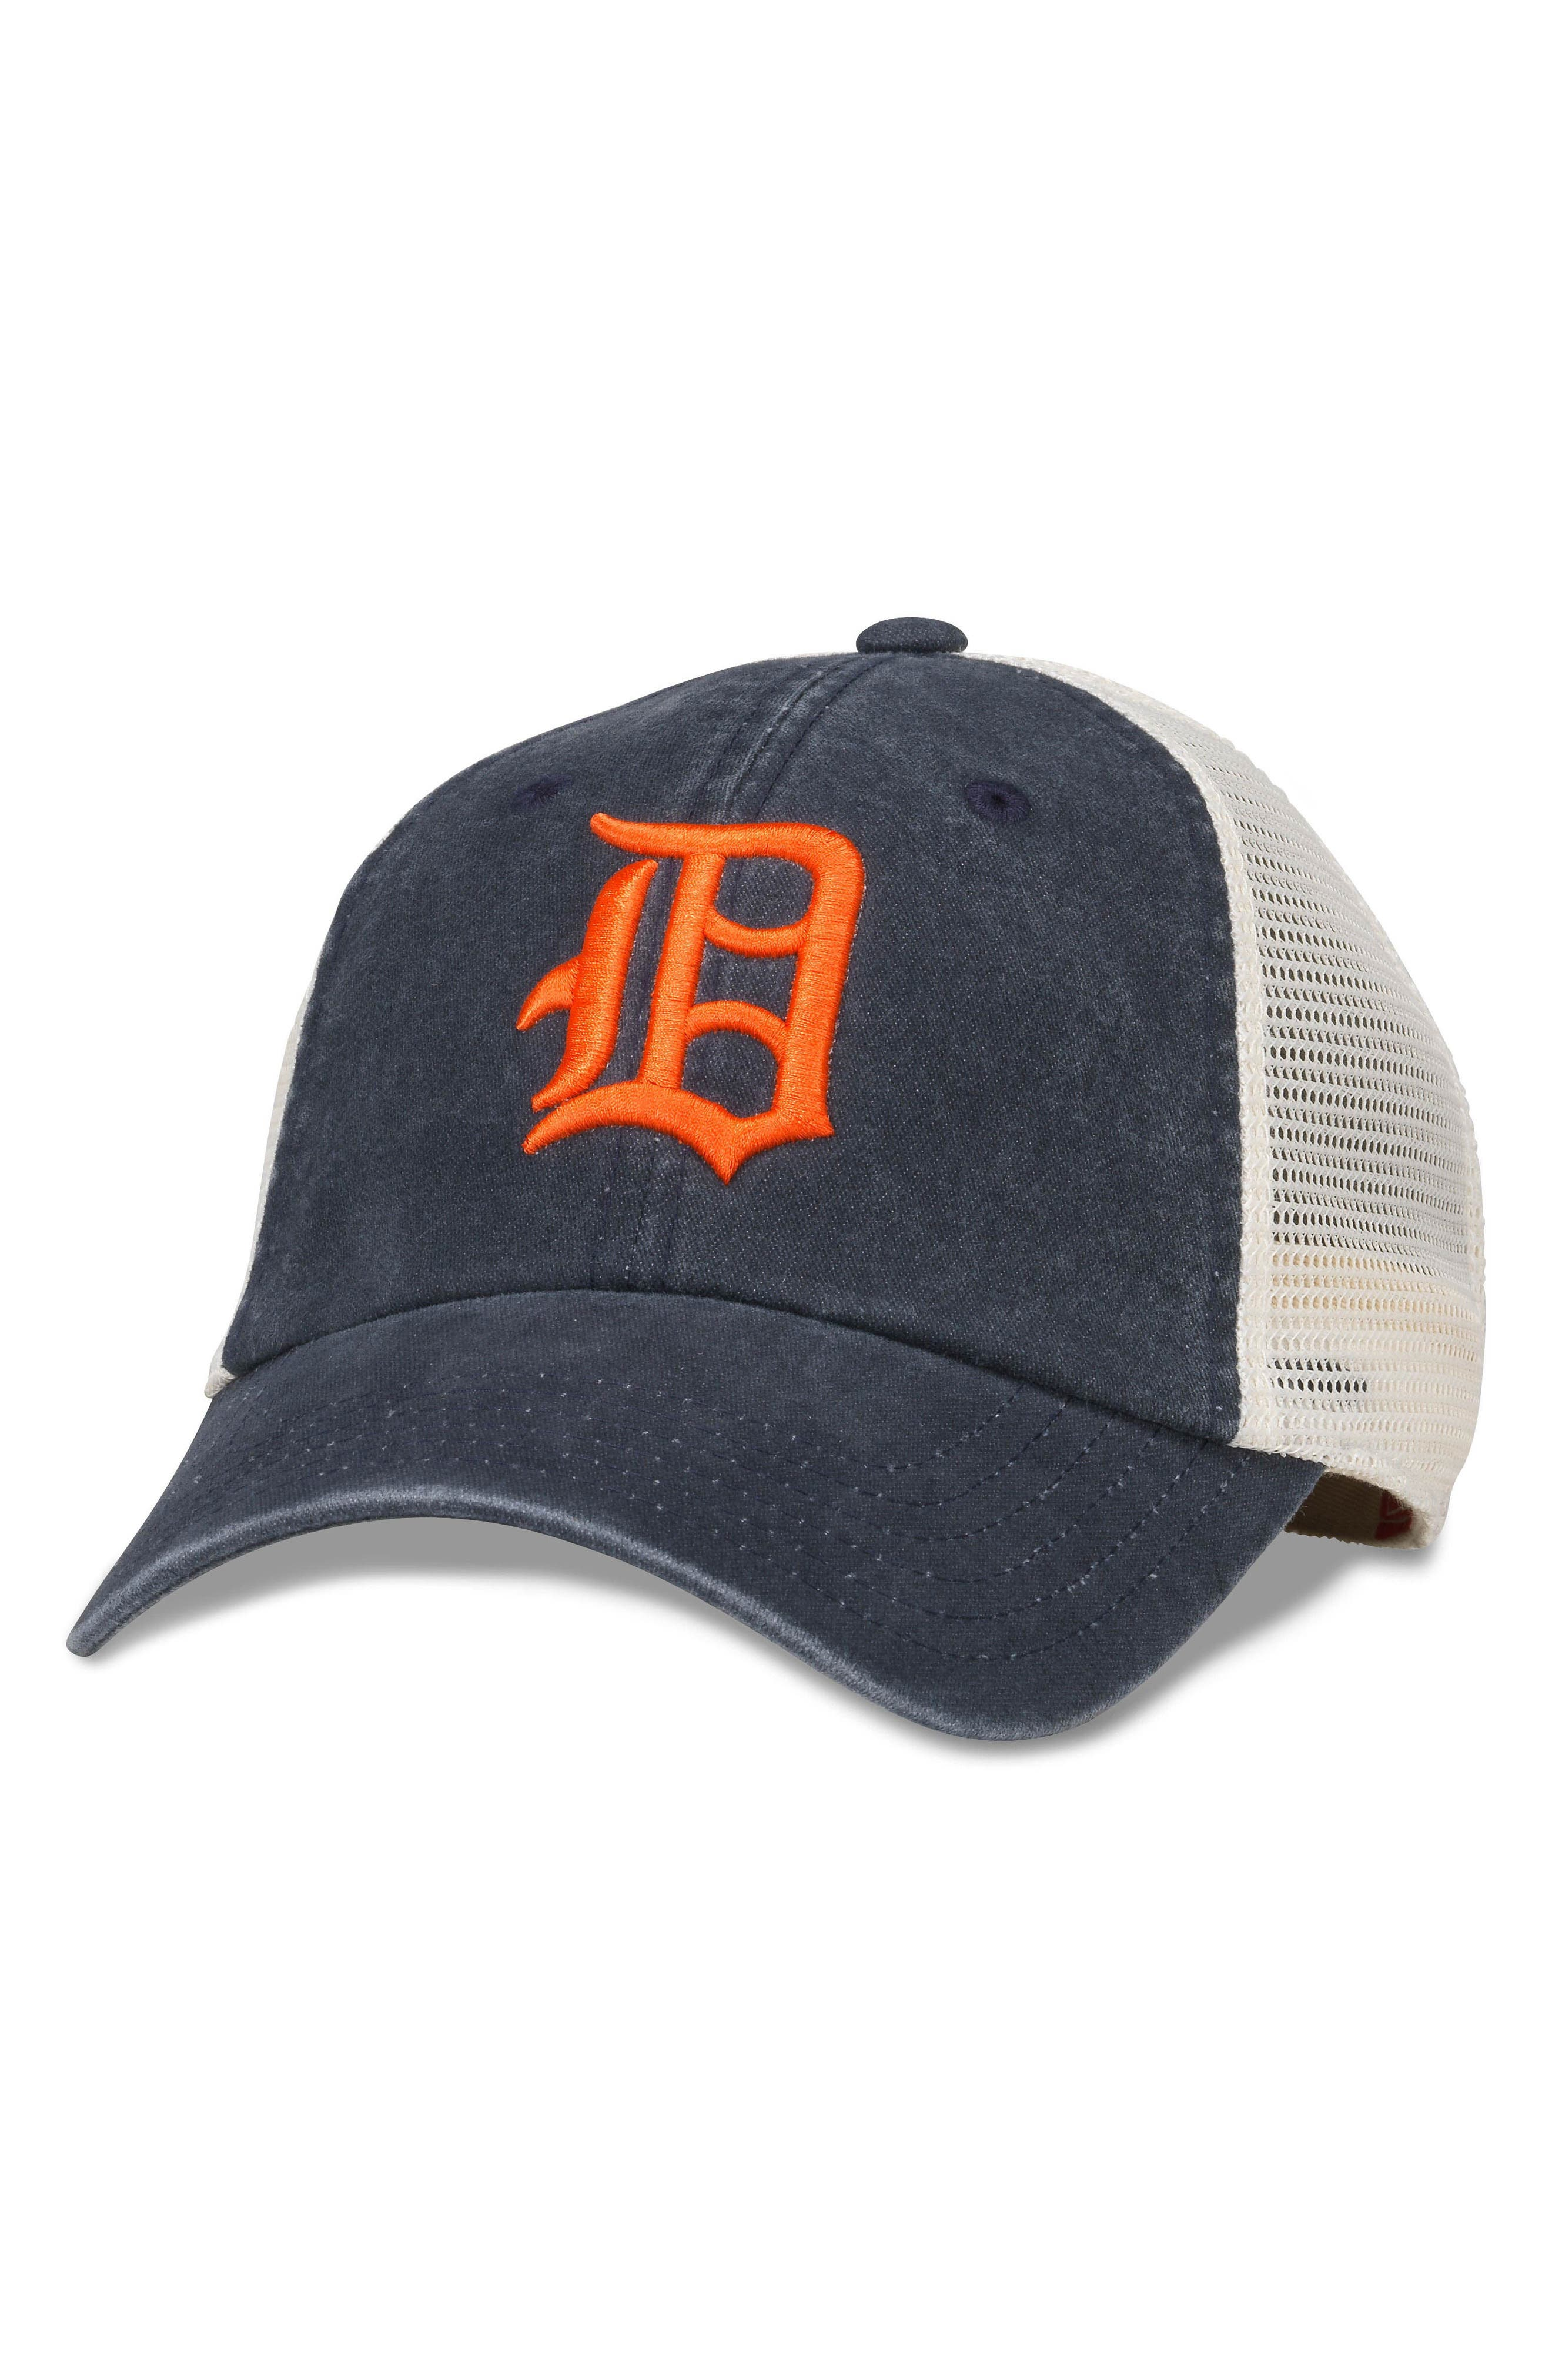 Alternate Image 1 Selected - American Needle New School MLB Trucker Hat